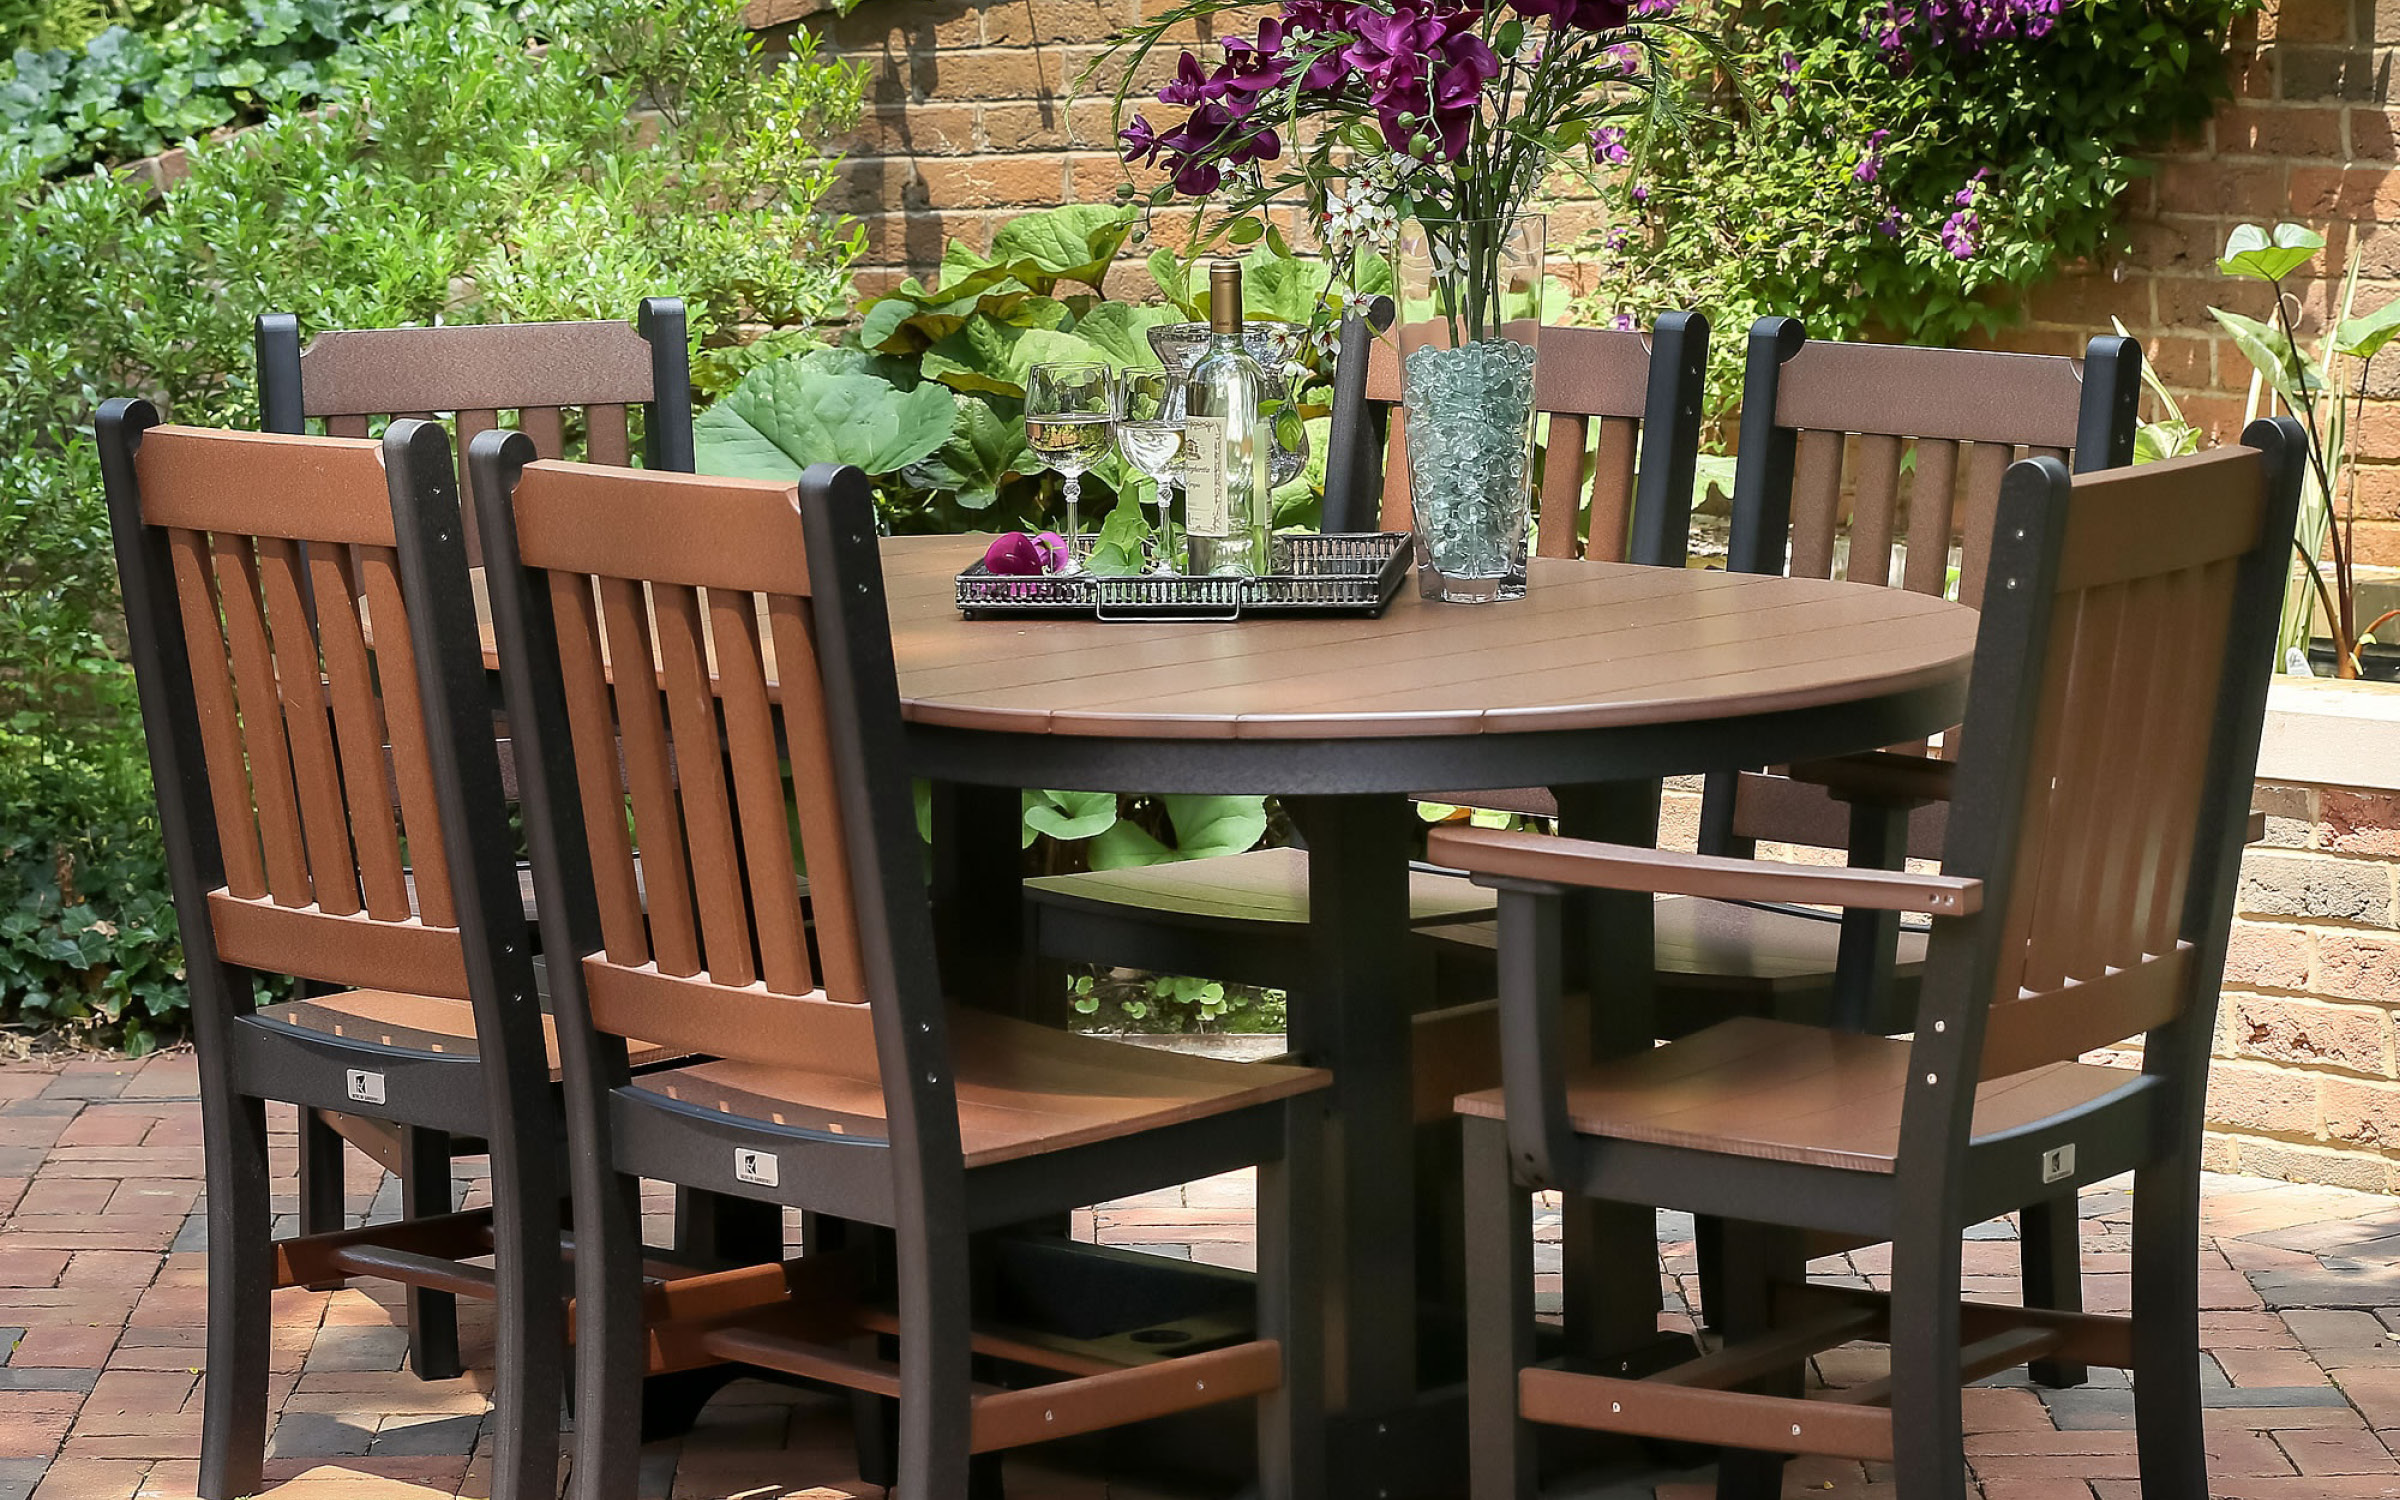 Outdoor Dining Set Furniture | iFurnish, Frisco, CO